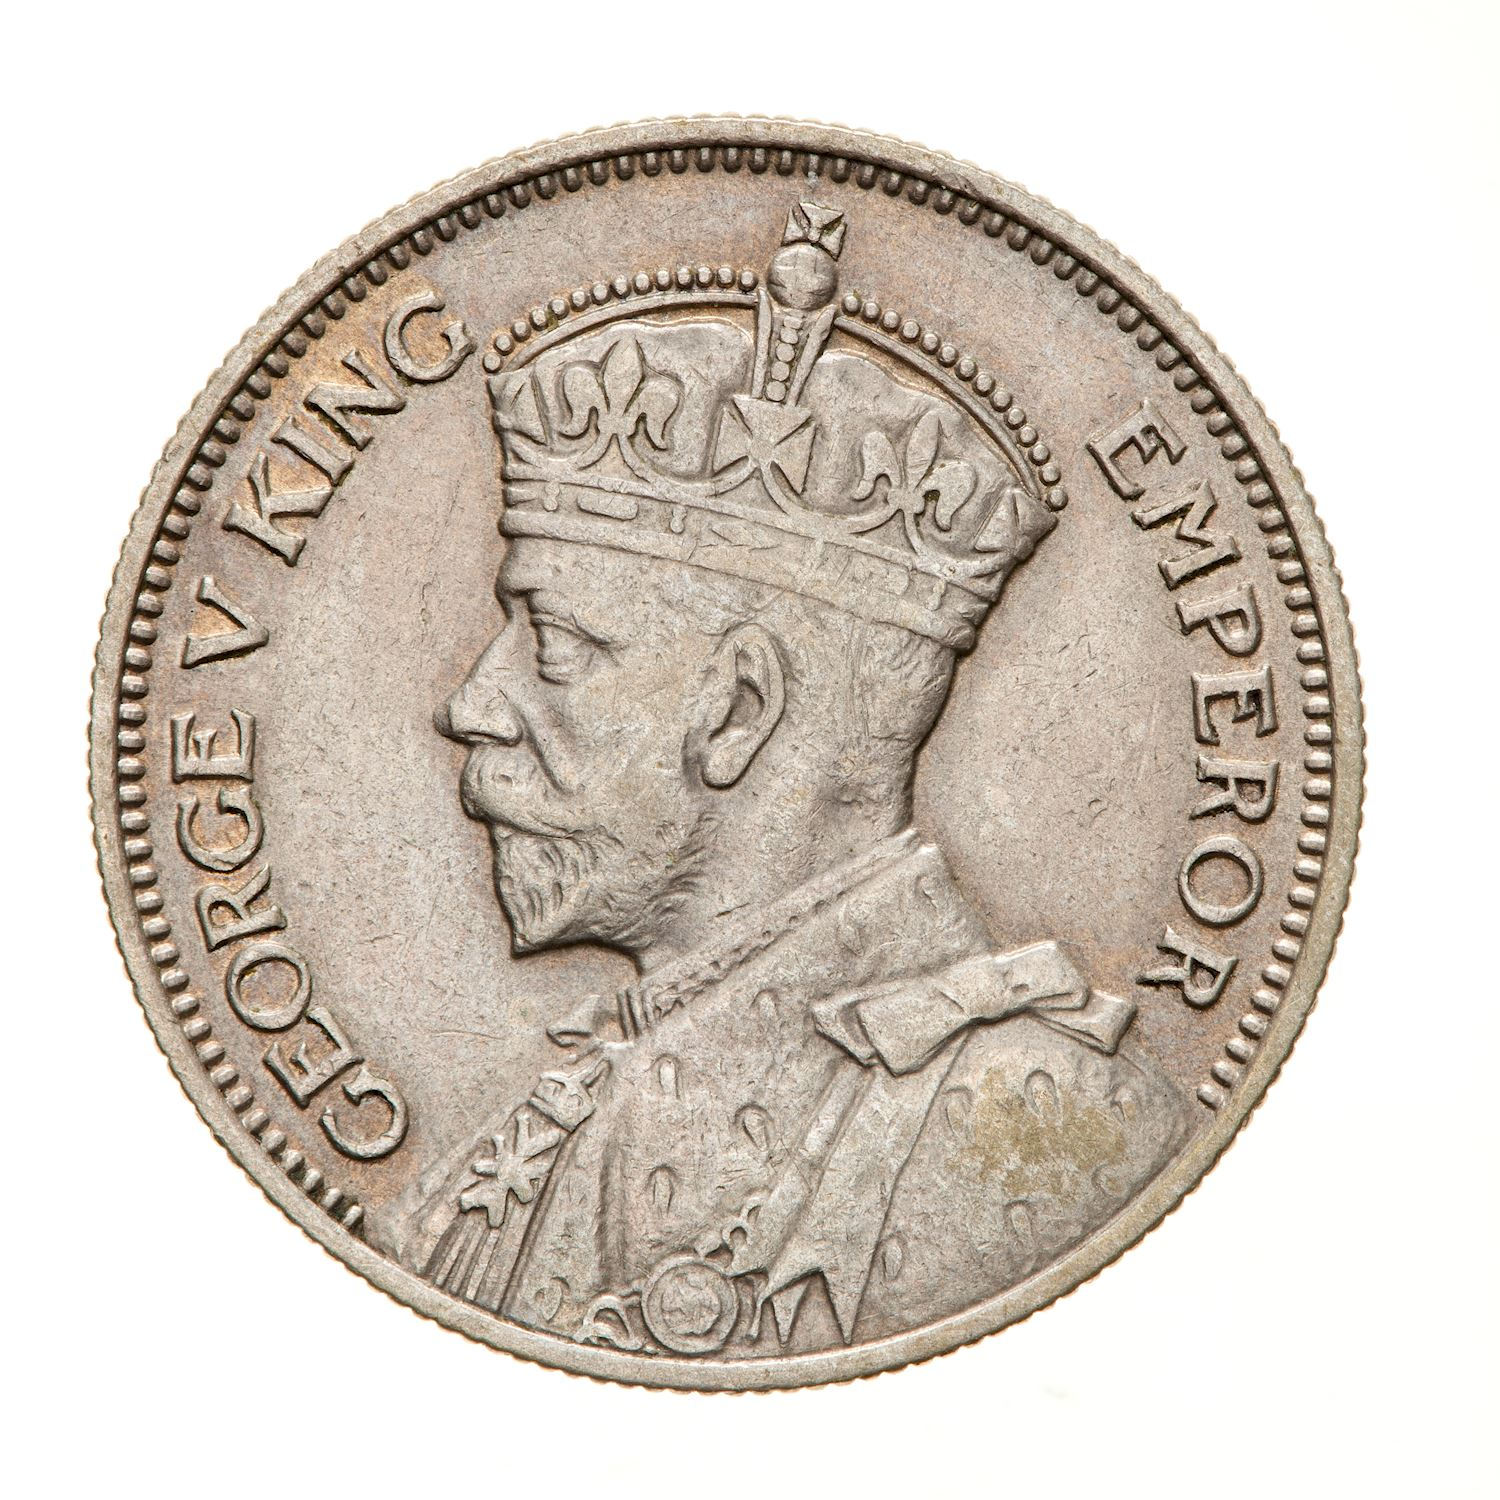 Shilling: Photo Coin - 1 Shilling, Fiji, 1936